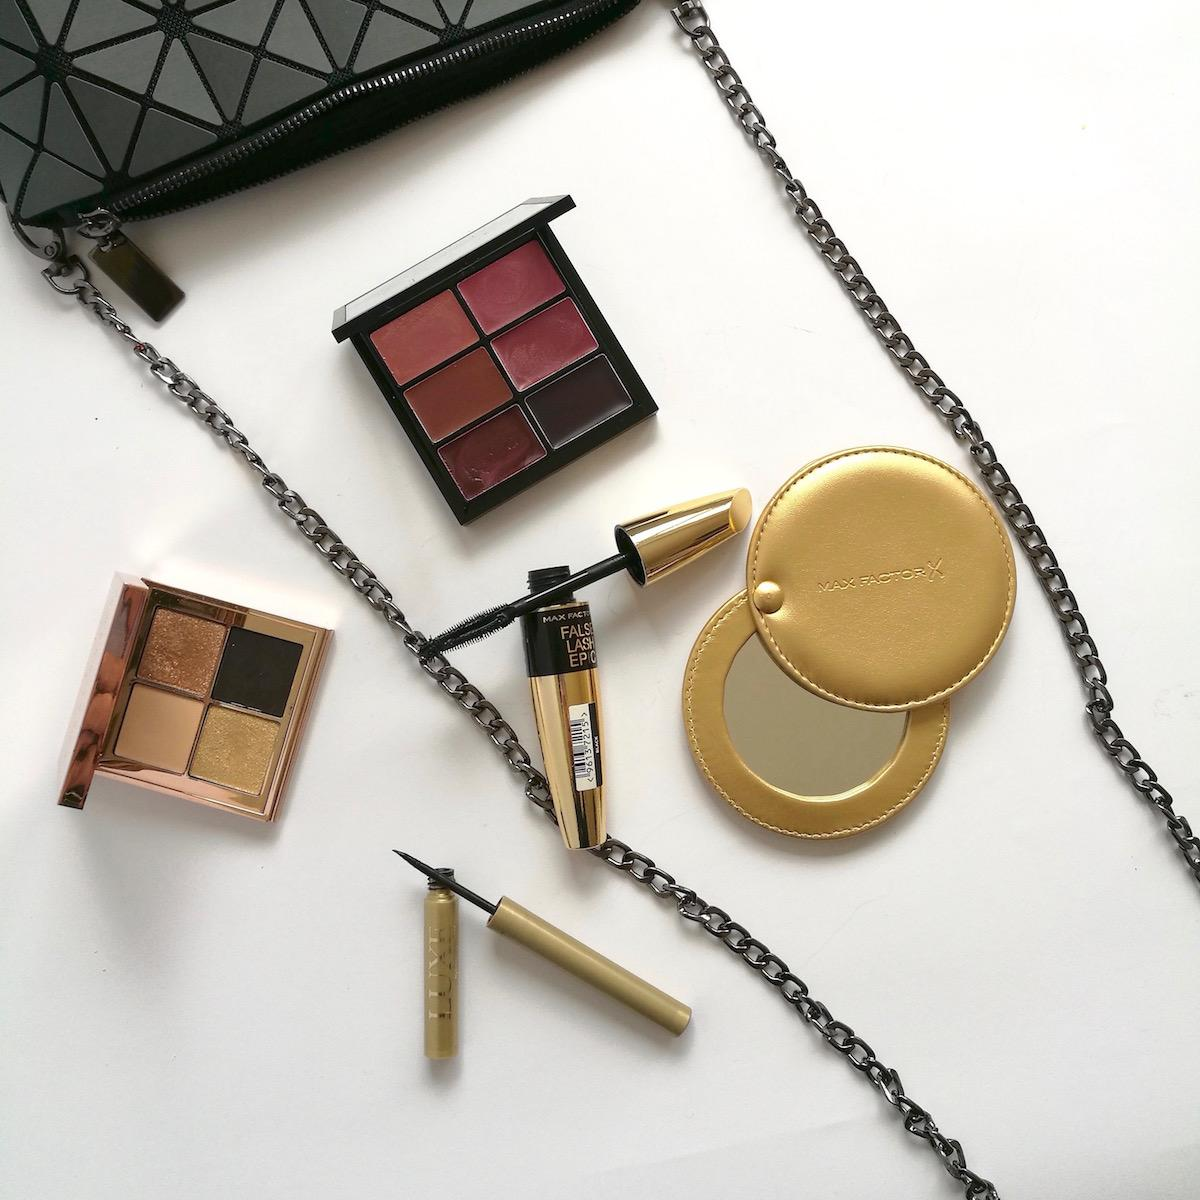 Nika Veger licenje makeup Bobbi Brown max factor maskara